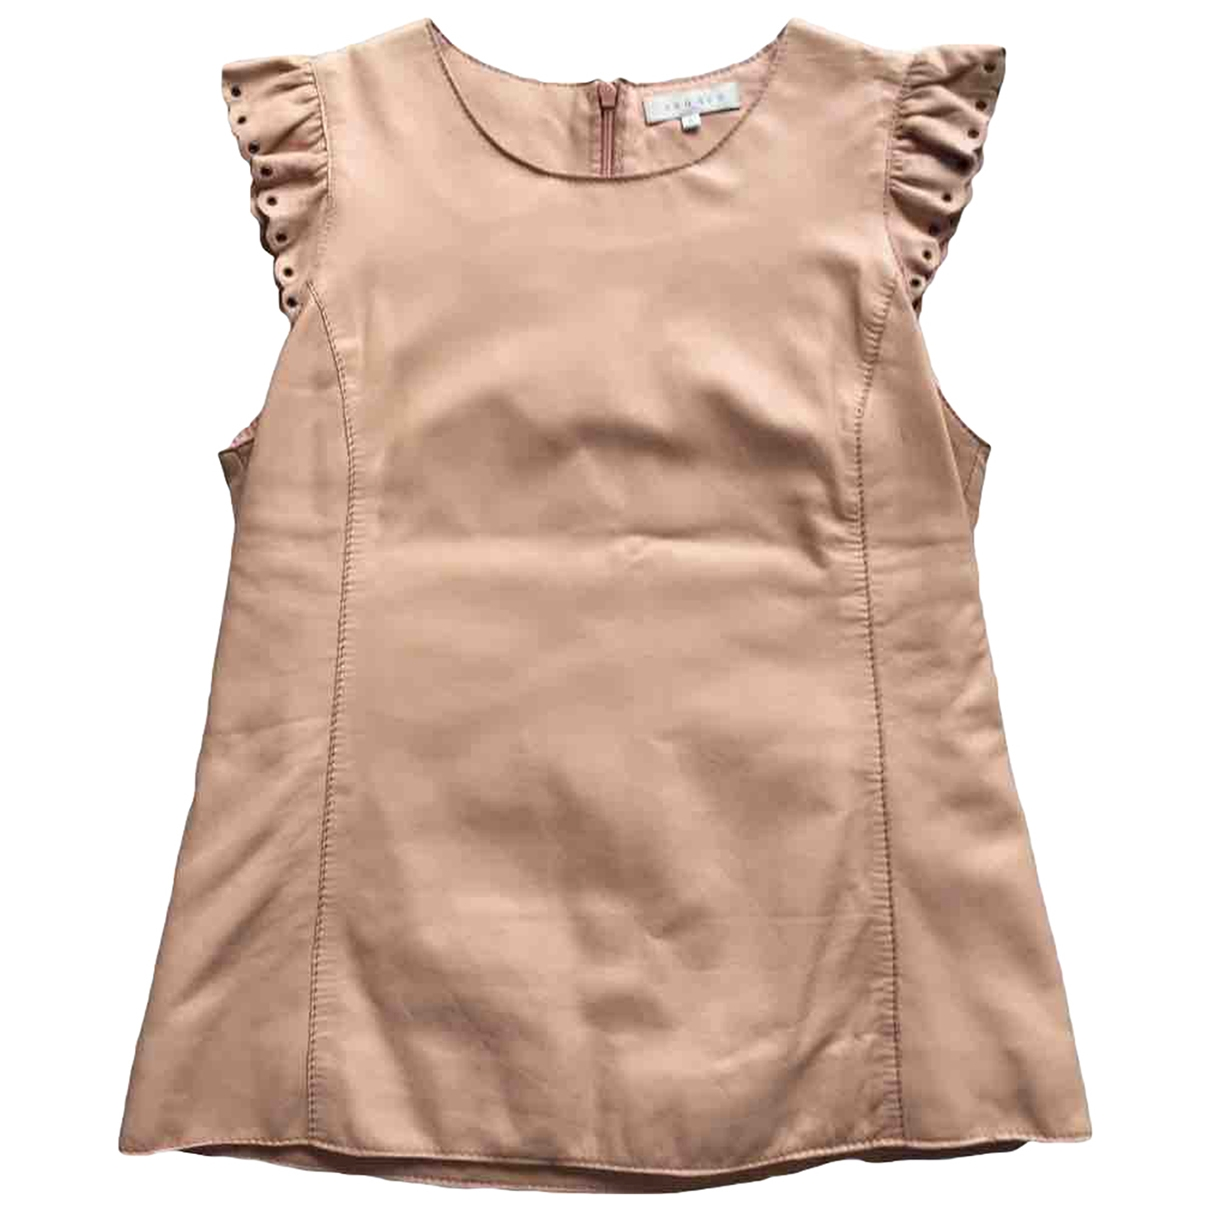 Sandro \N Beige Leather  top for Women 40 FR